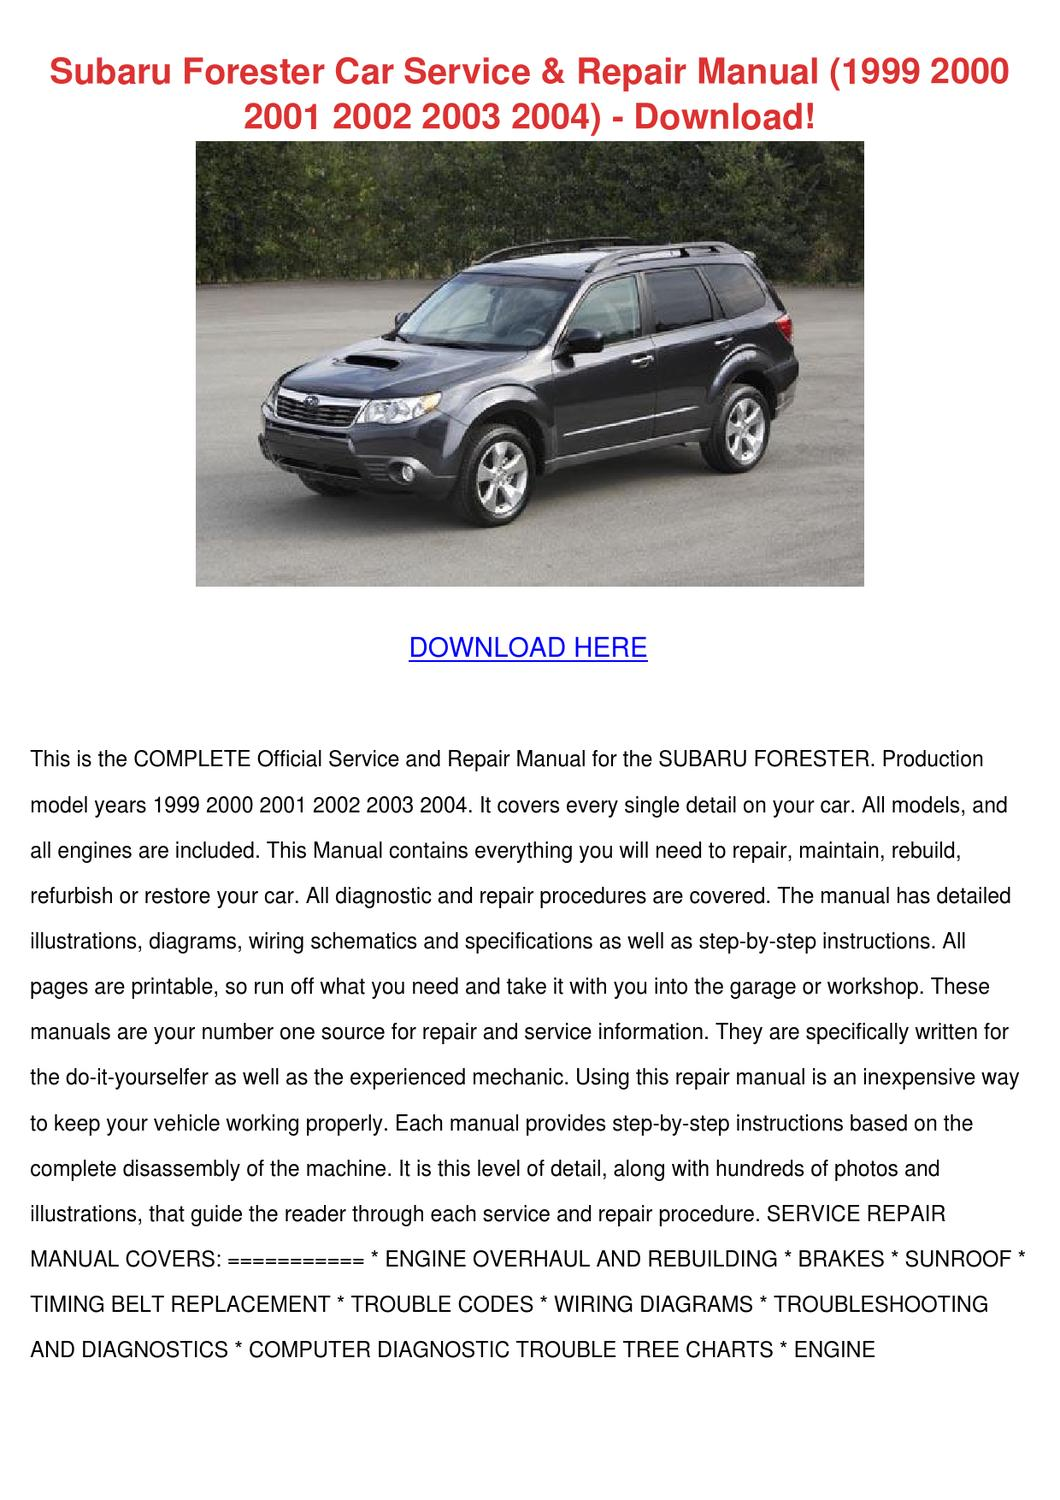 Subaru Forester Car Service Repair Manual 199